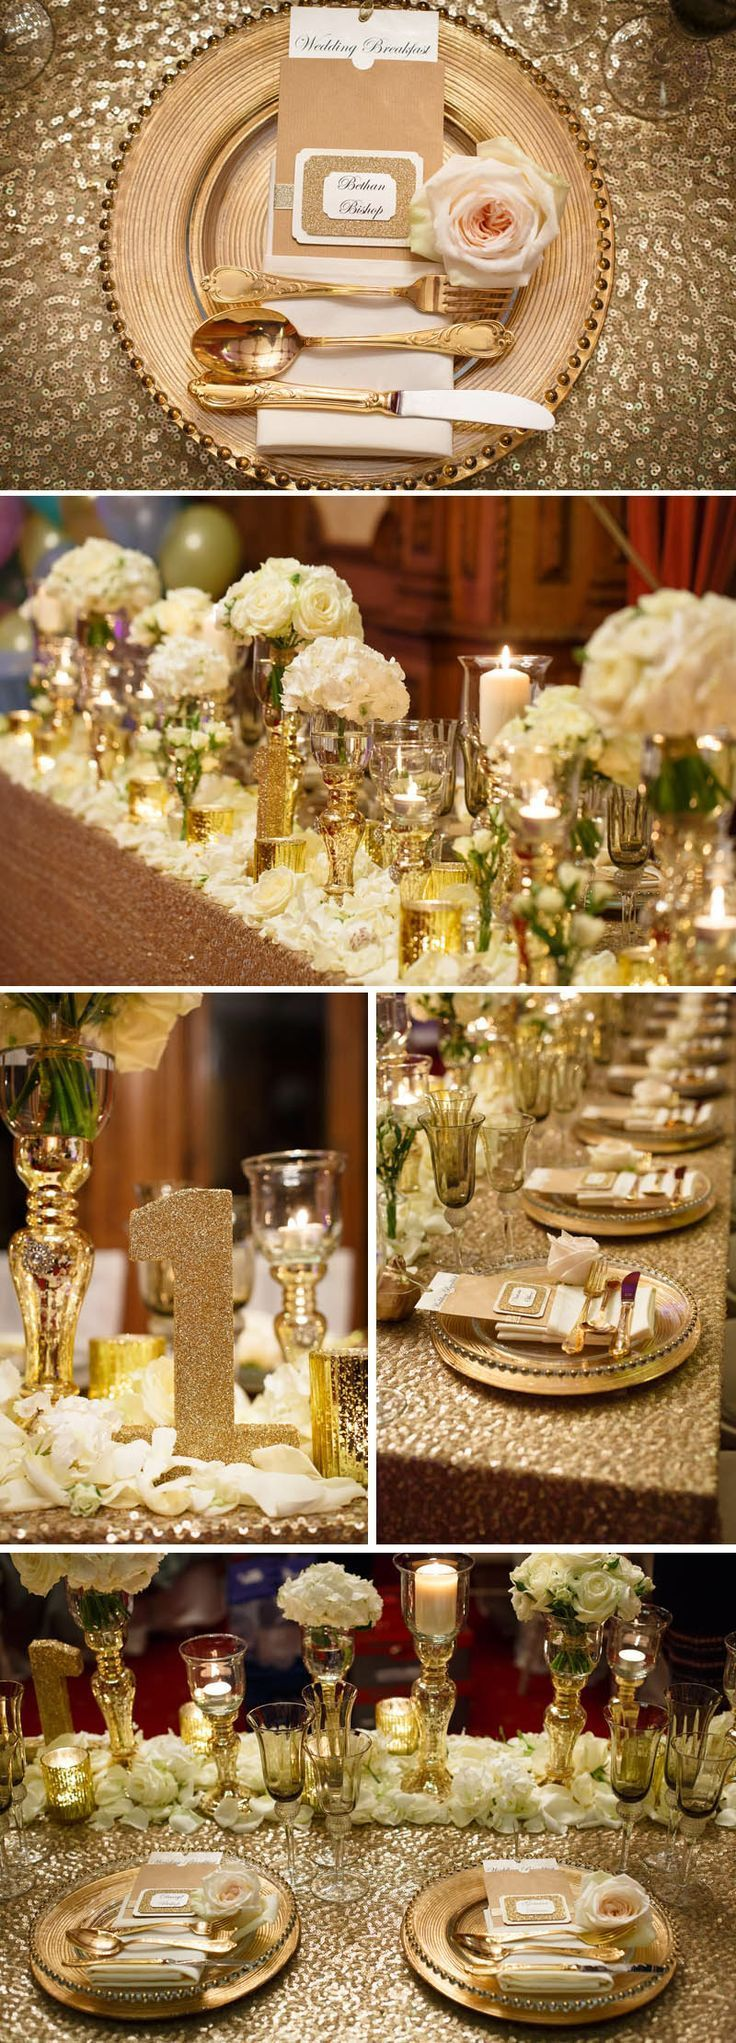 With such a fabulous event space to decorate you will need a little sparkle! #VENUE221 #EventDecor